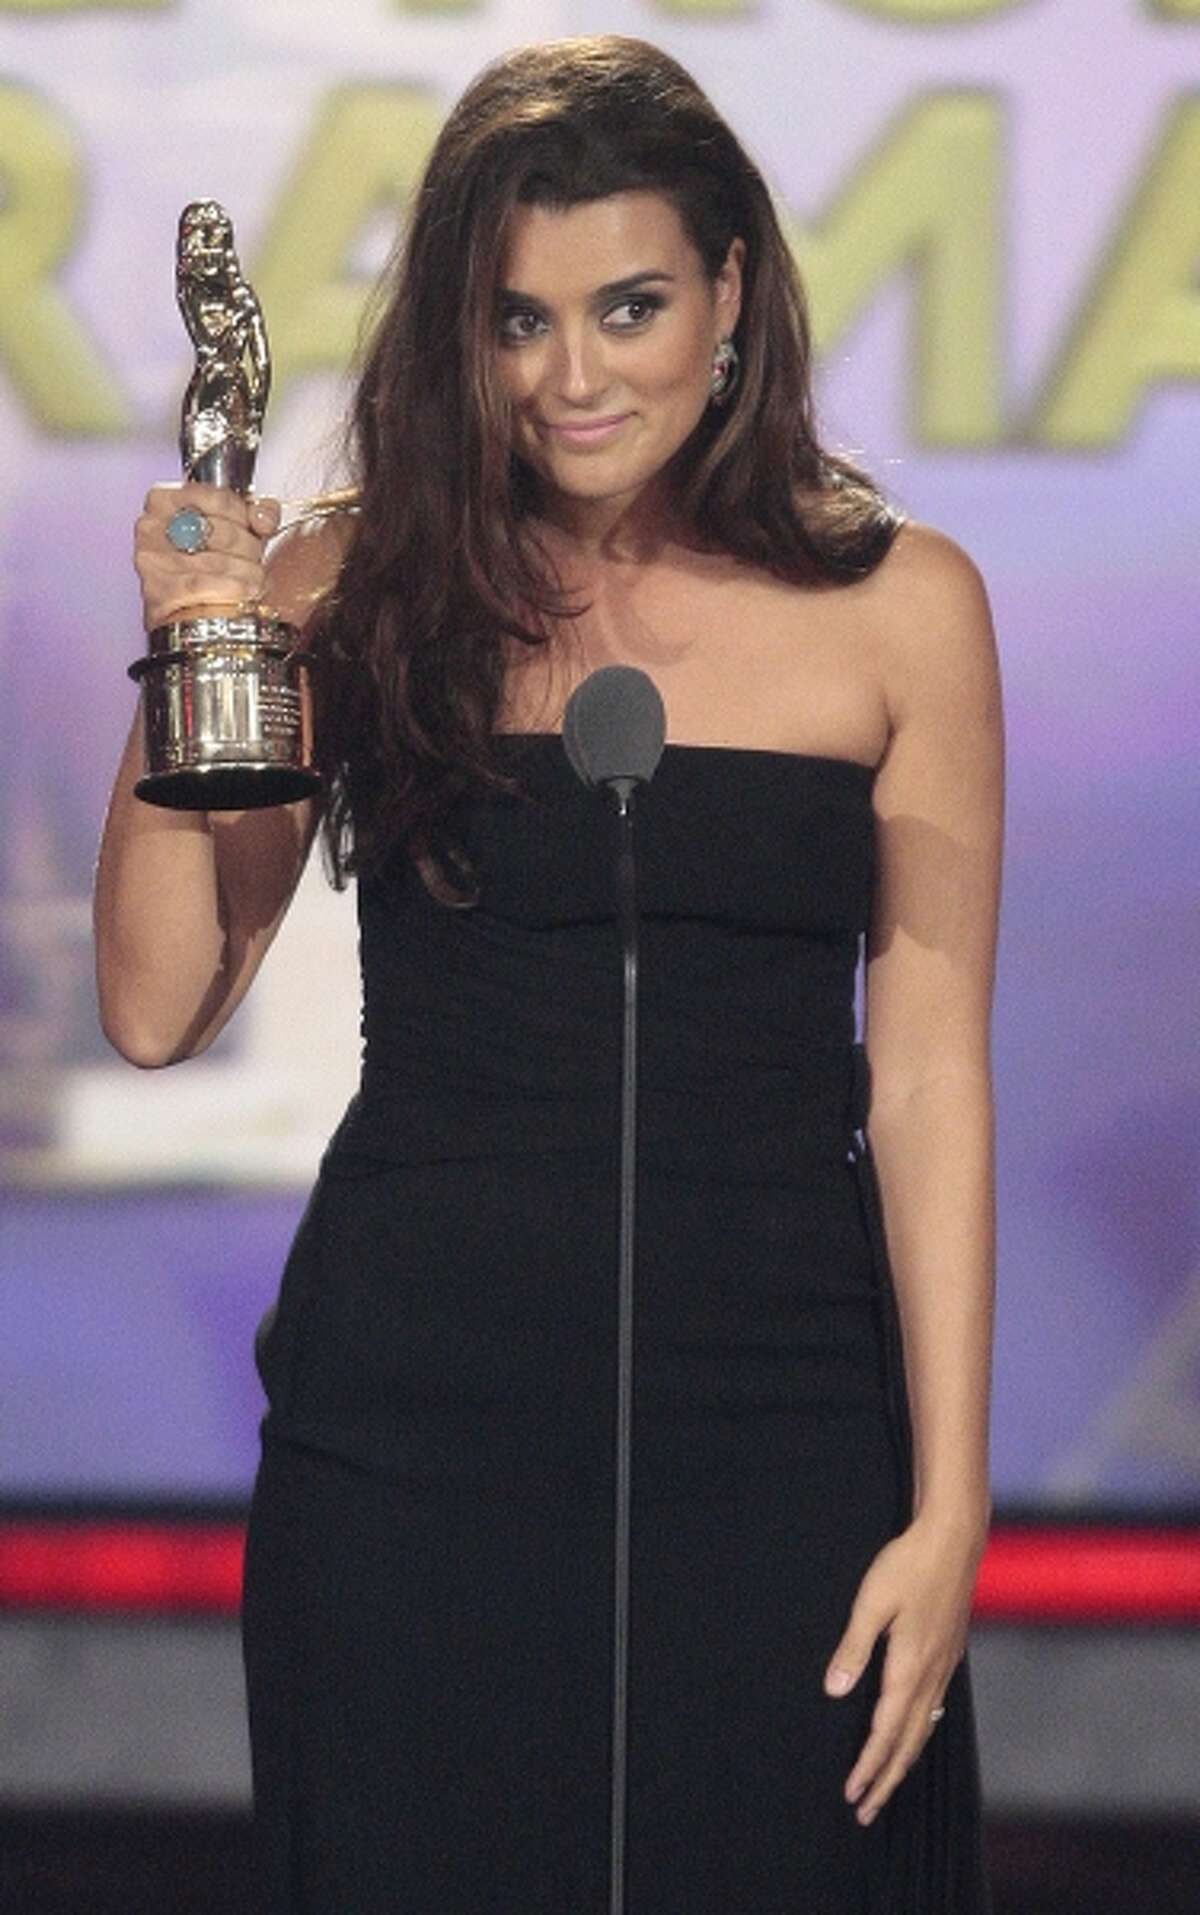 Actress Cote de Pablo accepts the award for Favorite TV Actress - Leading Role in a Drama for